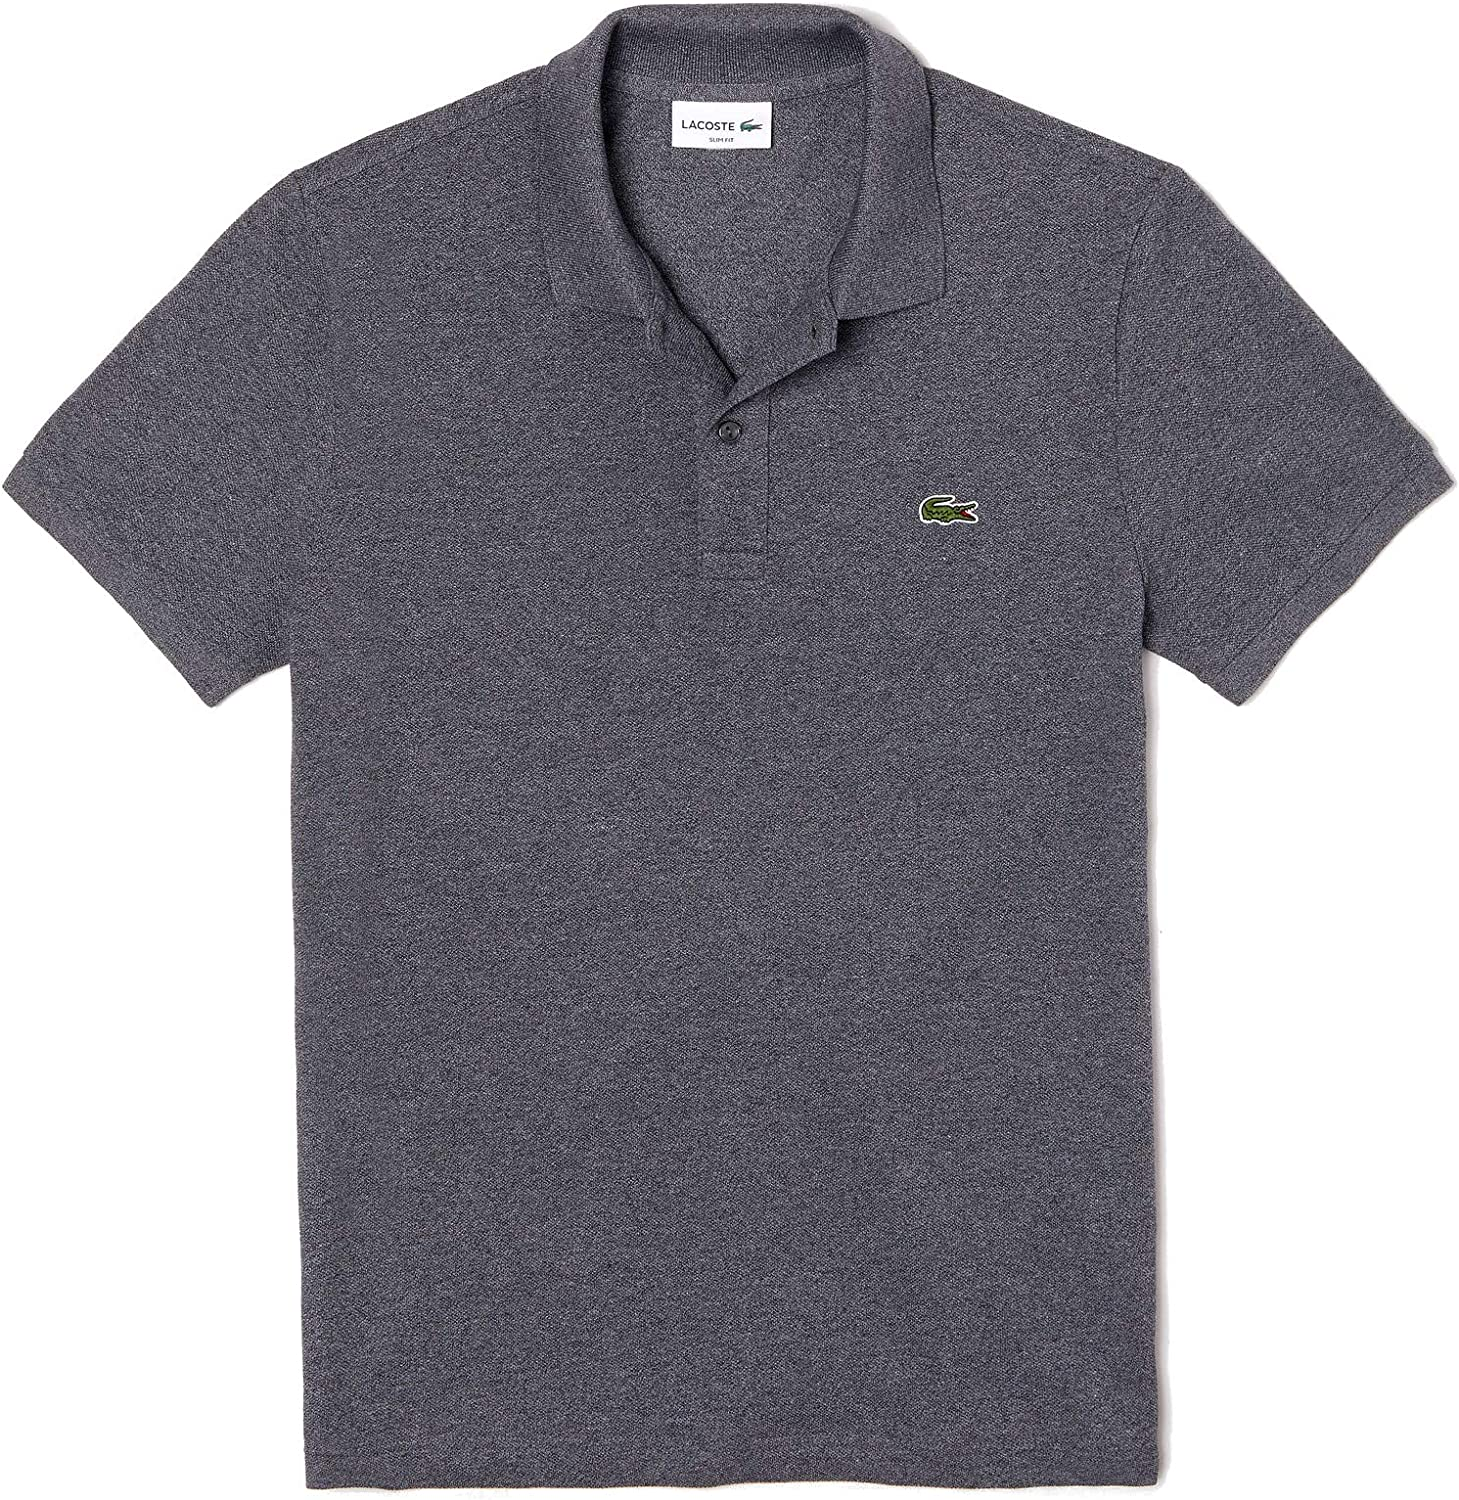 Max 57% OFF Lacoste Men's Classic Pique Slim Max 57% OFF Fit Polo Shirt Sleeve Short